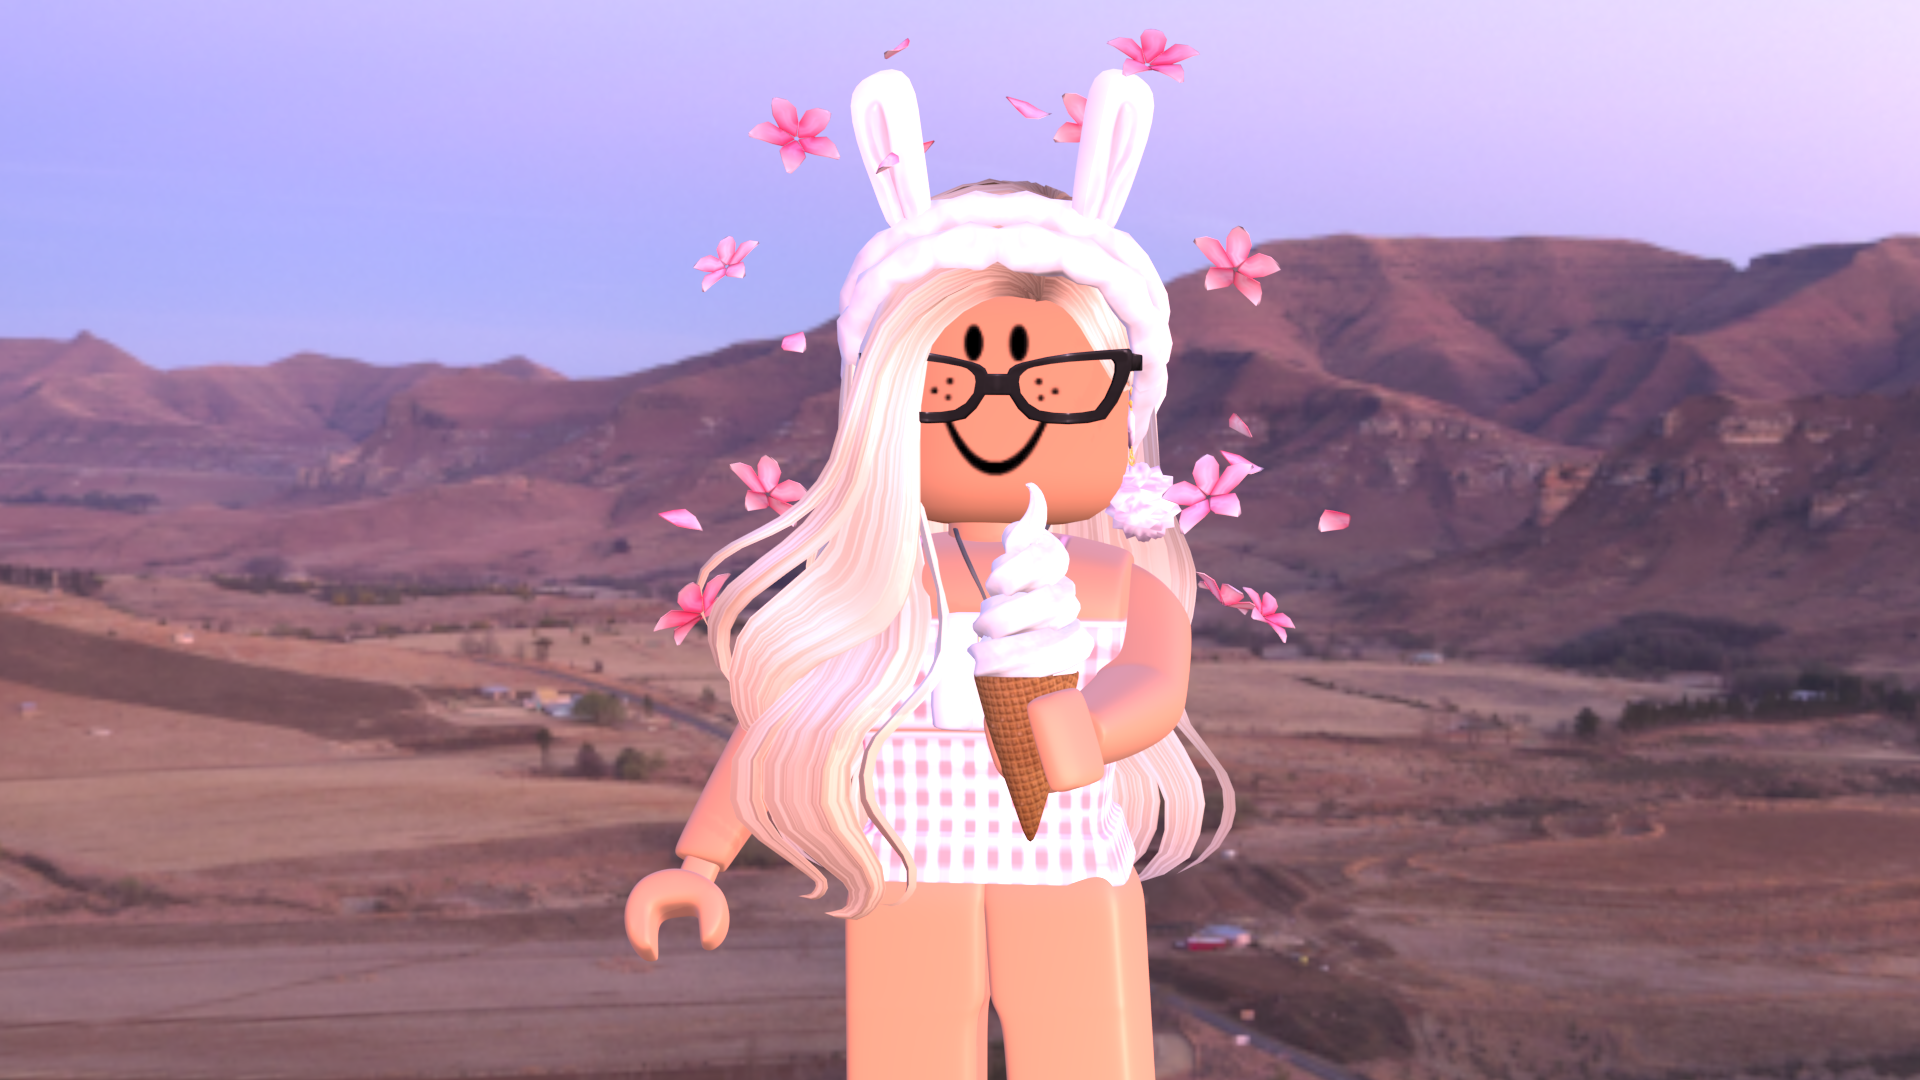 Twins Cute Tumblr Wallpaper Roblox Pictures Roblox Animation